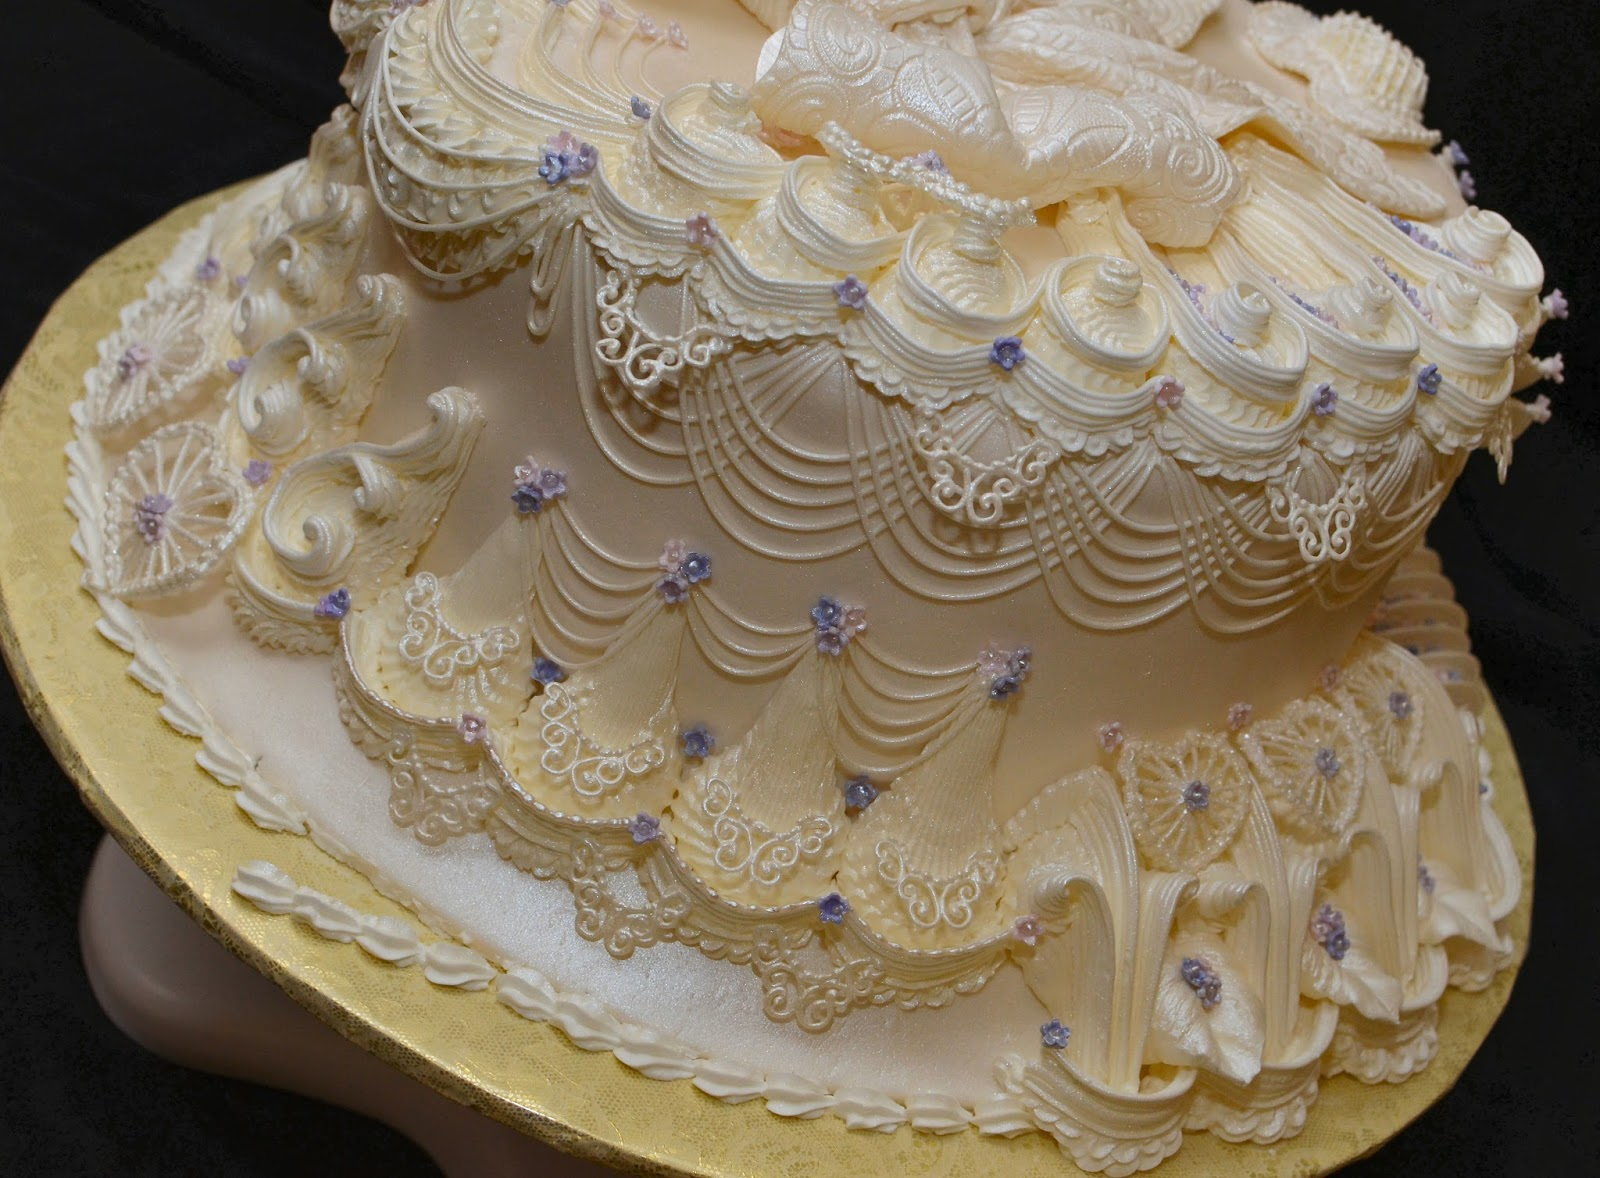 How Long Does A Covered Cake With Royal Icing